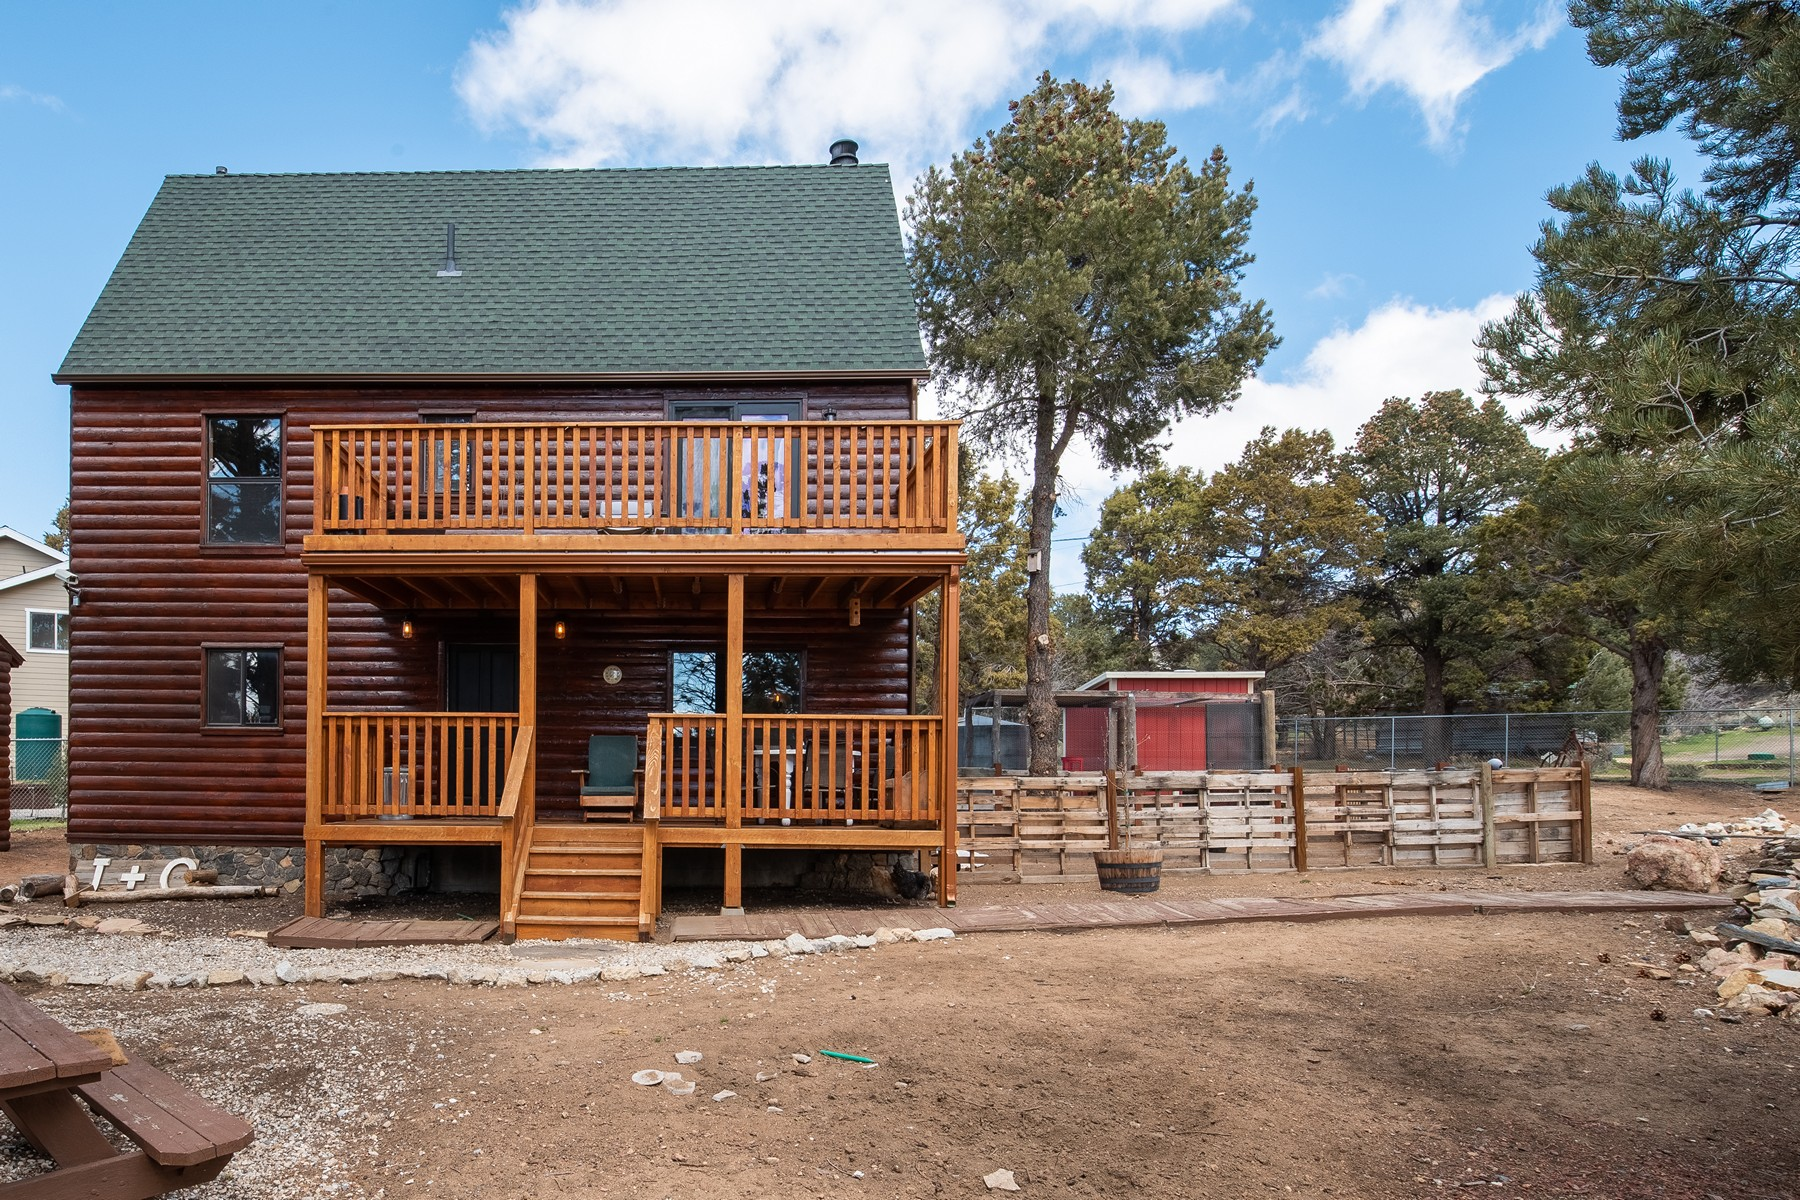 Single Family Homes for Active at 40 Silicon Lane, Big Bear City, California 92314 40 Silicon Lane Big Bear City, California 92314 United States